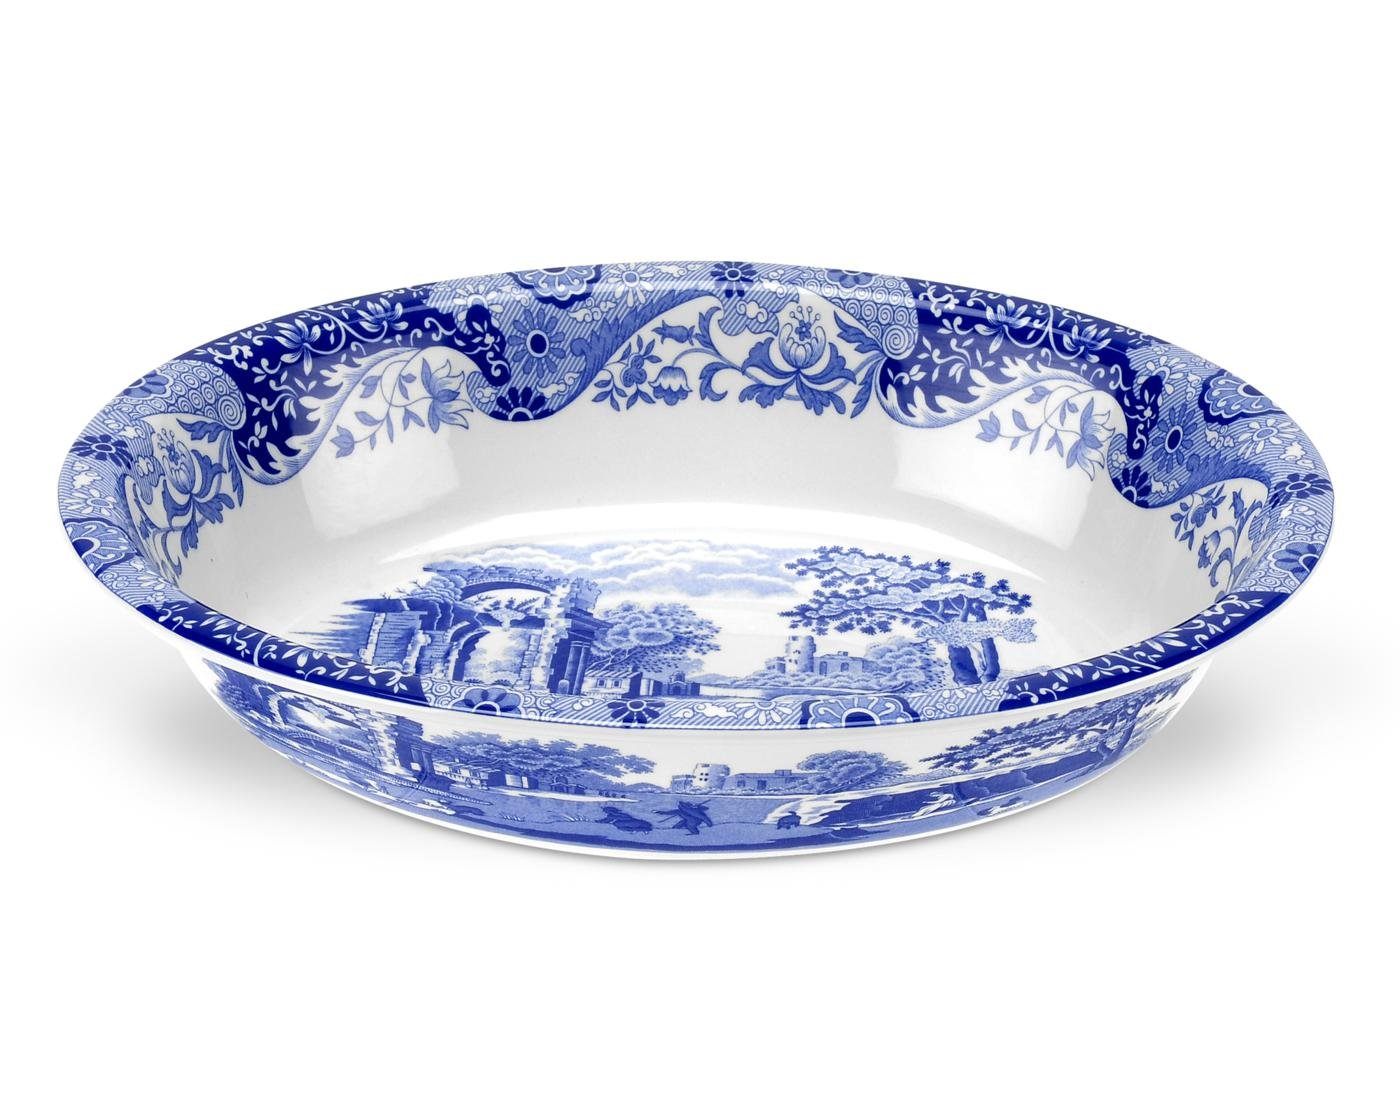 Spode Blue Italian Oval Rimmed Dish by Spode (Image #1)